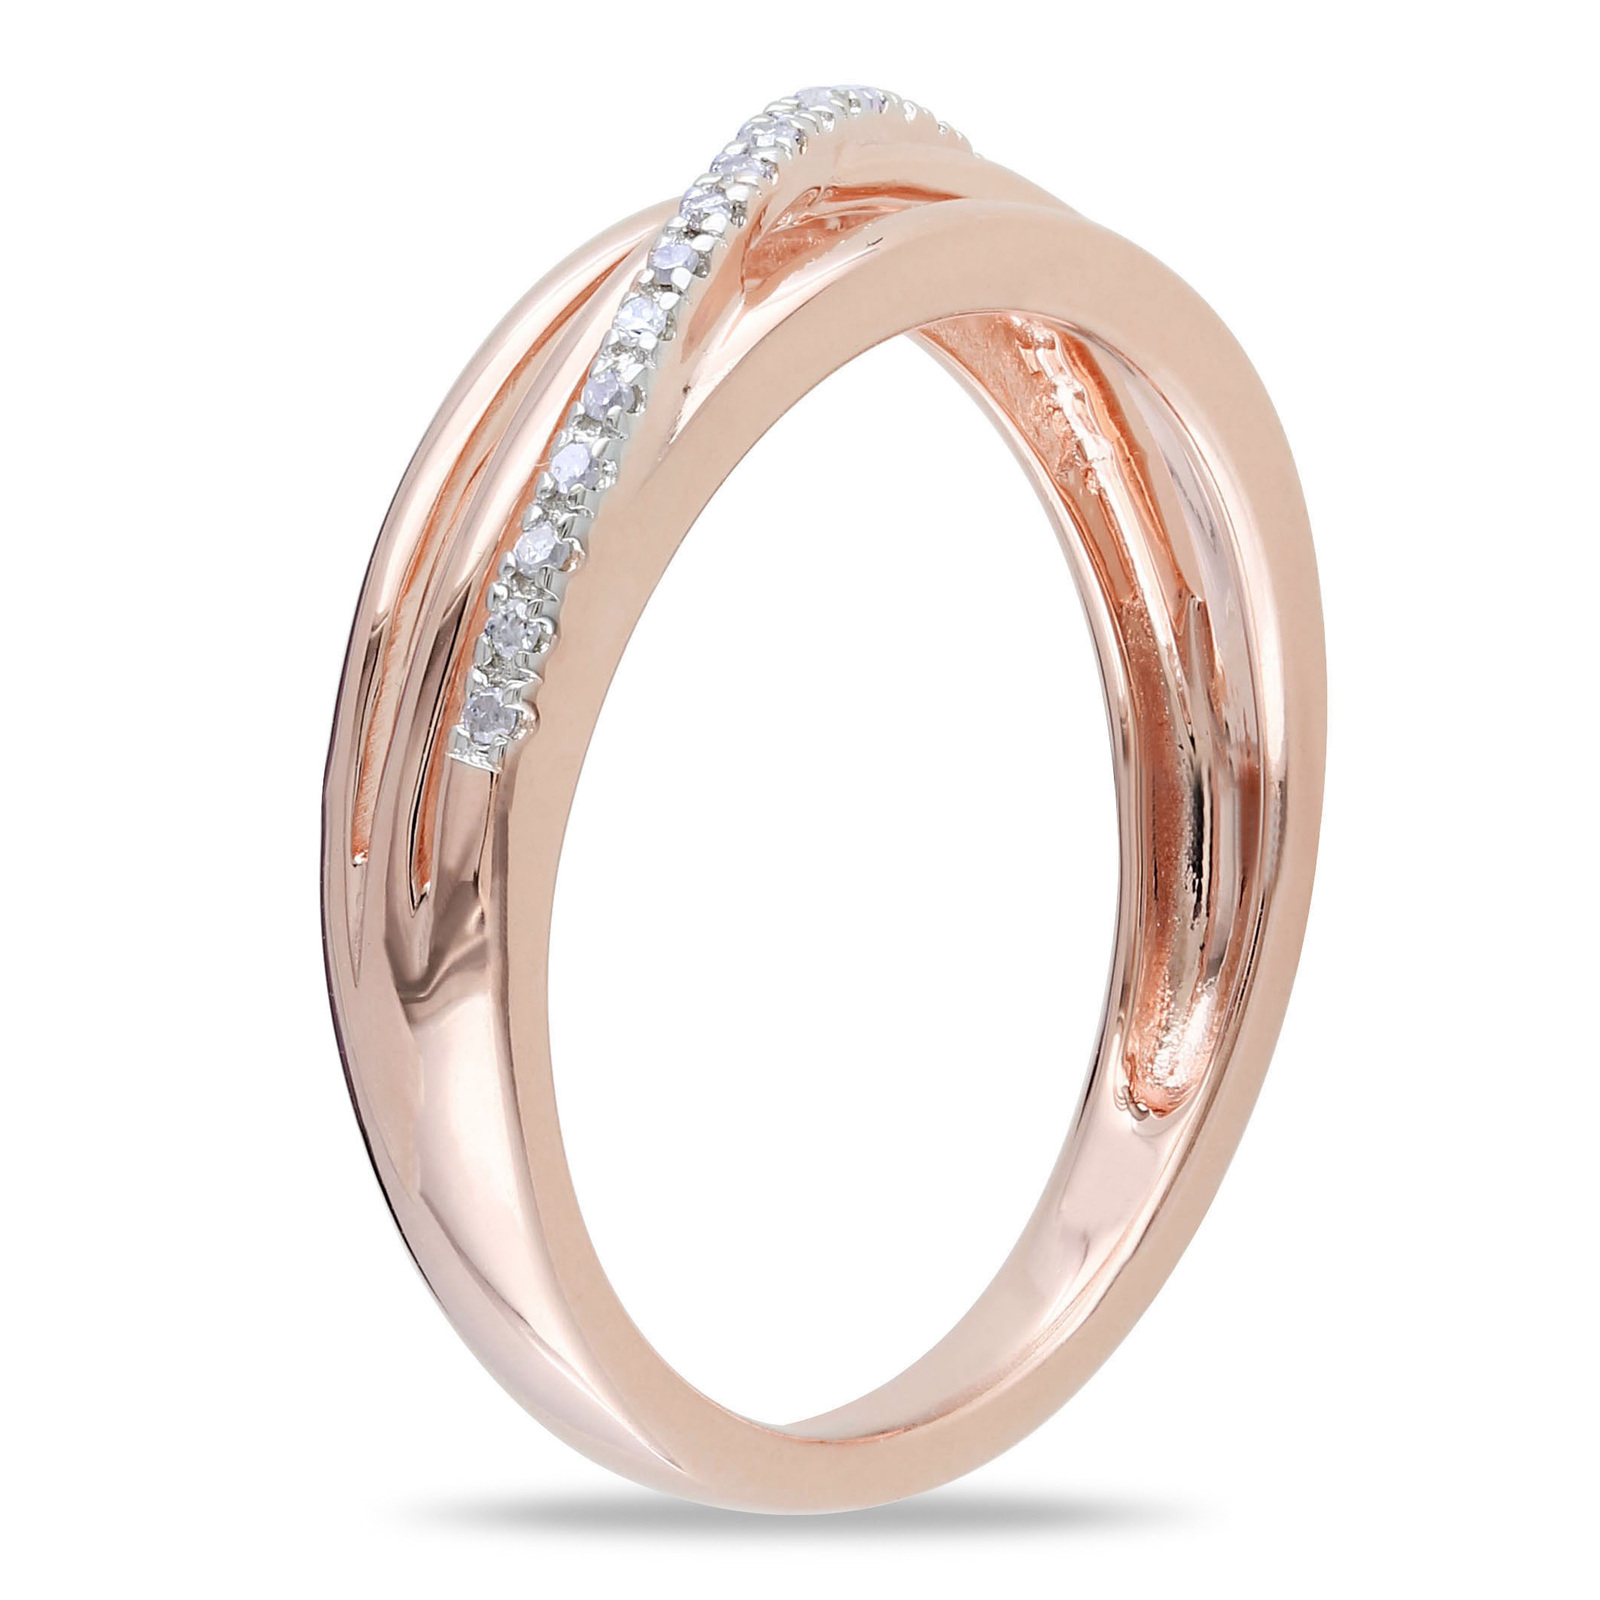 925 Pure Silver 14k Rose Gold Finish Round Cut Sim Diamond Band Engagement Ring